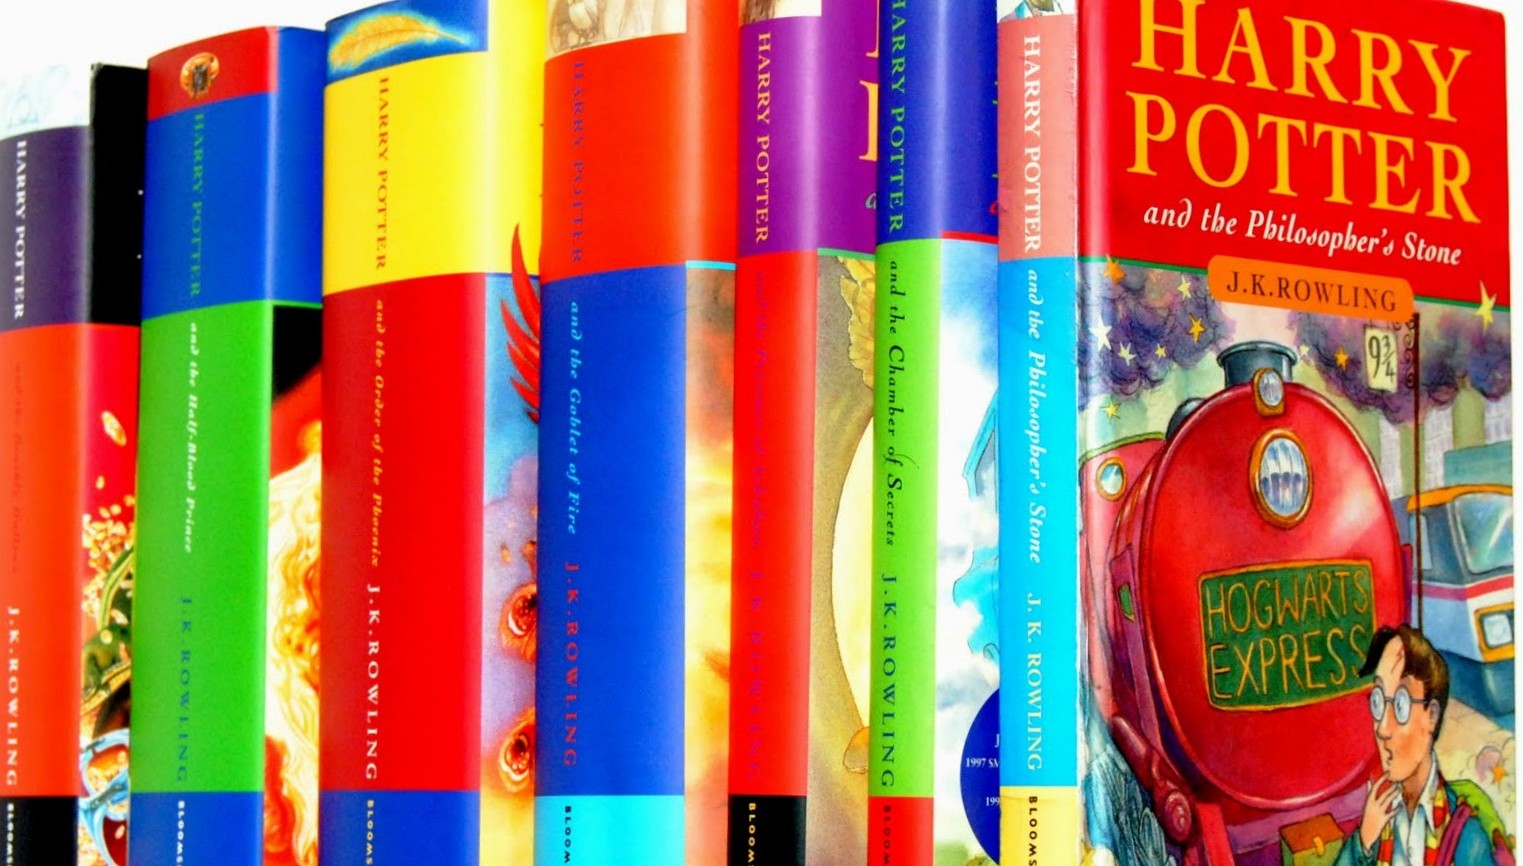 Harry potter controversy essays